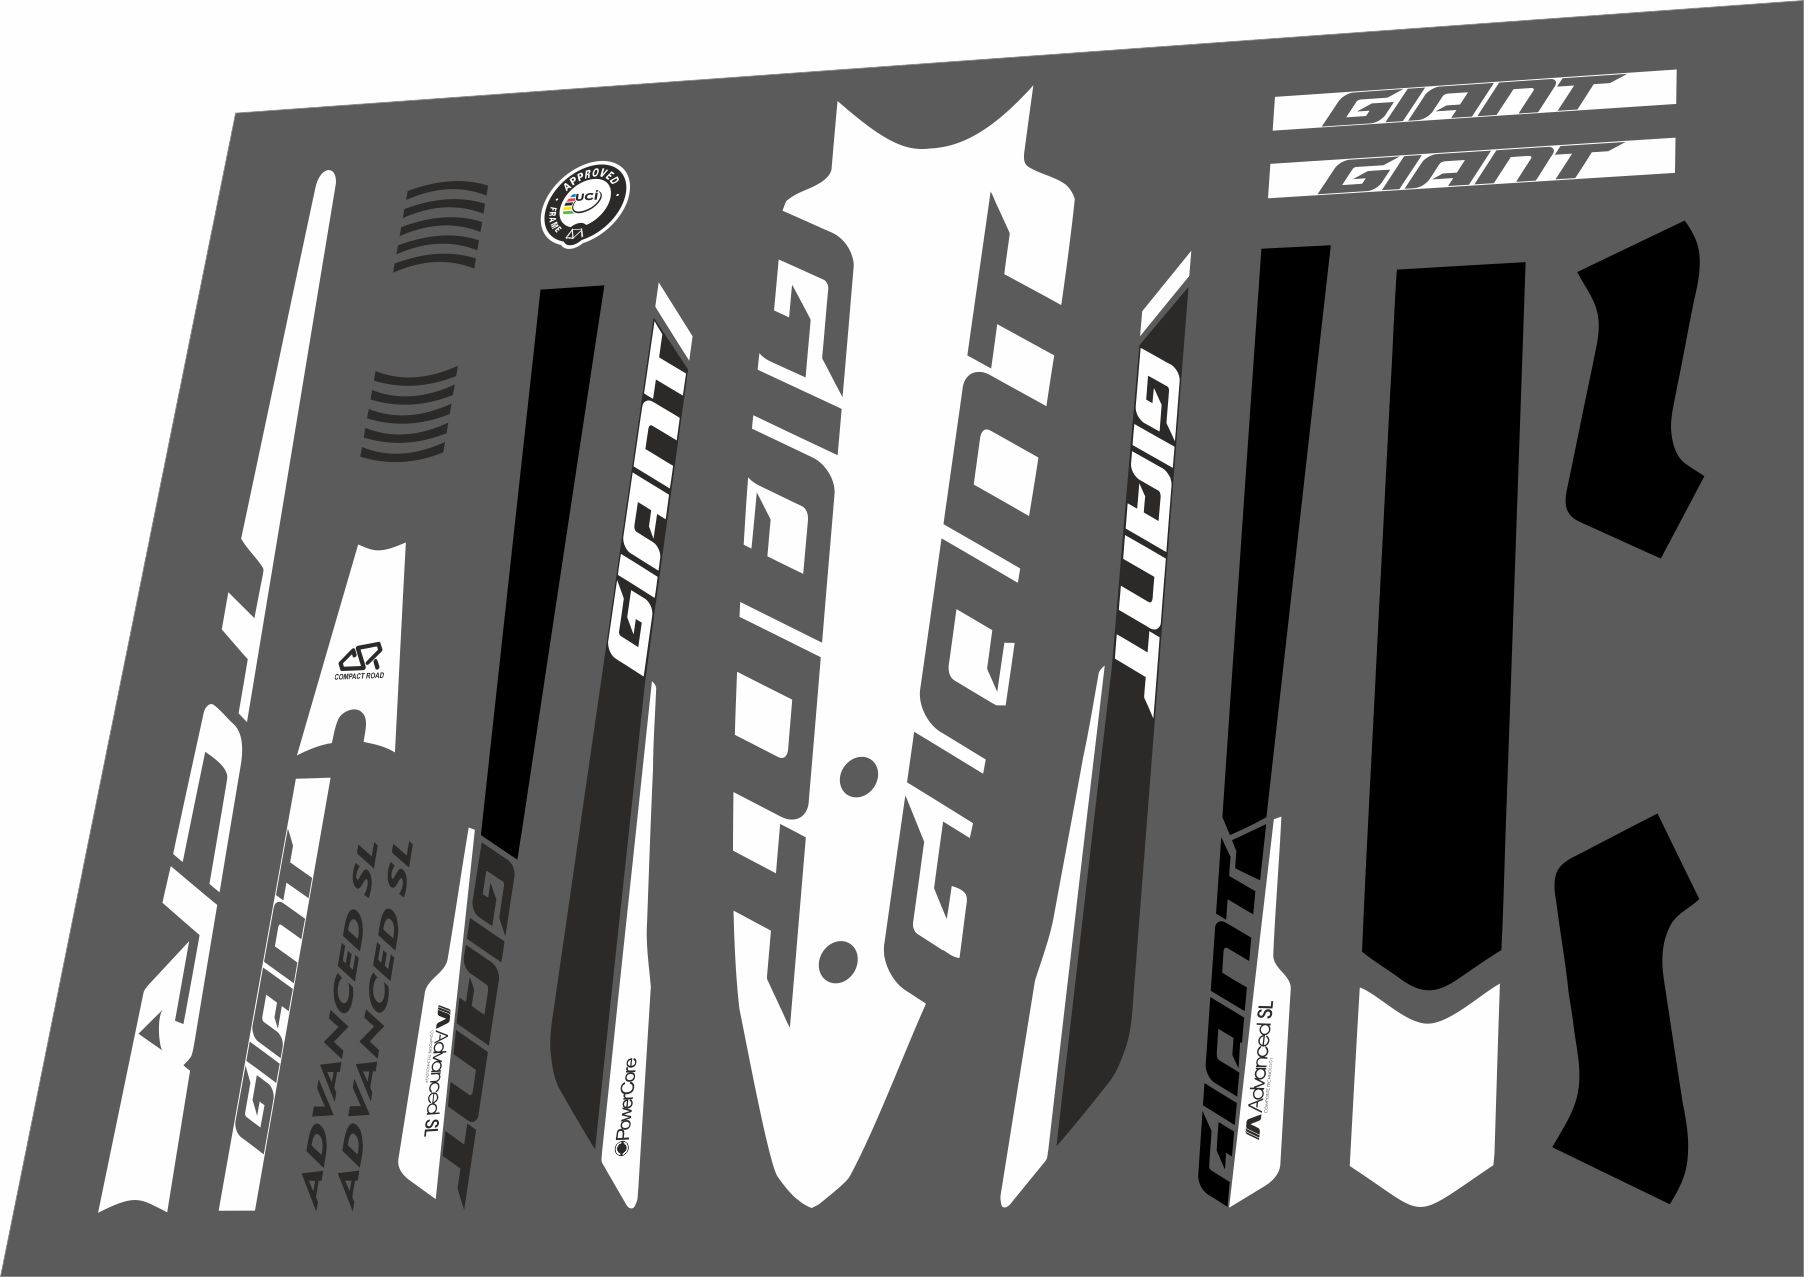 Details about giant tcr advanced sl 2016 frame sticker factory decal adhesive vinyl set white